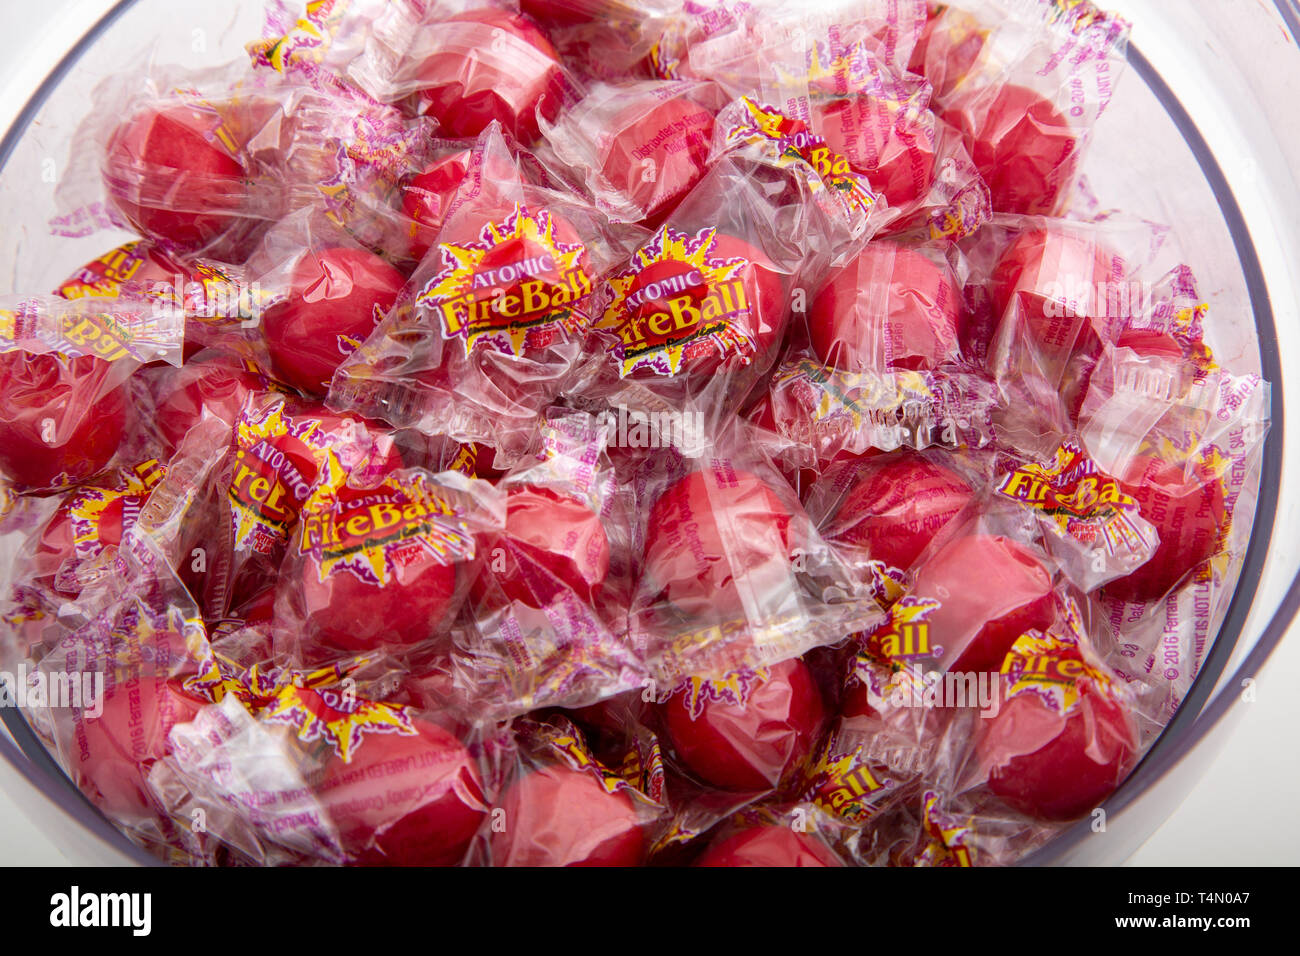 A bowl of wrapped Atomic Fire Balls - Stock Image